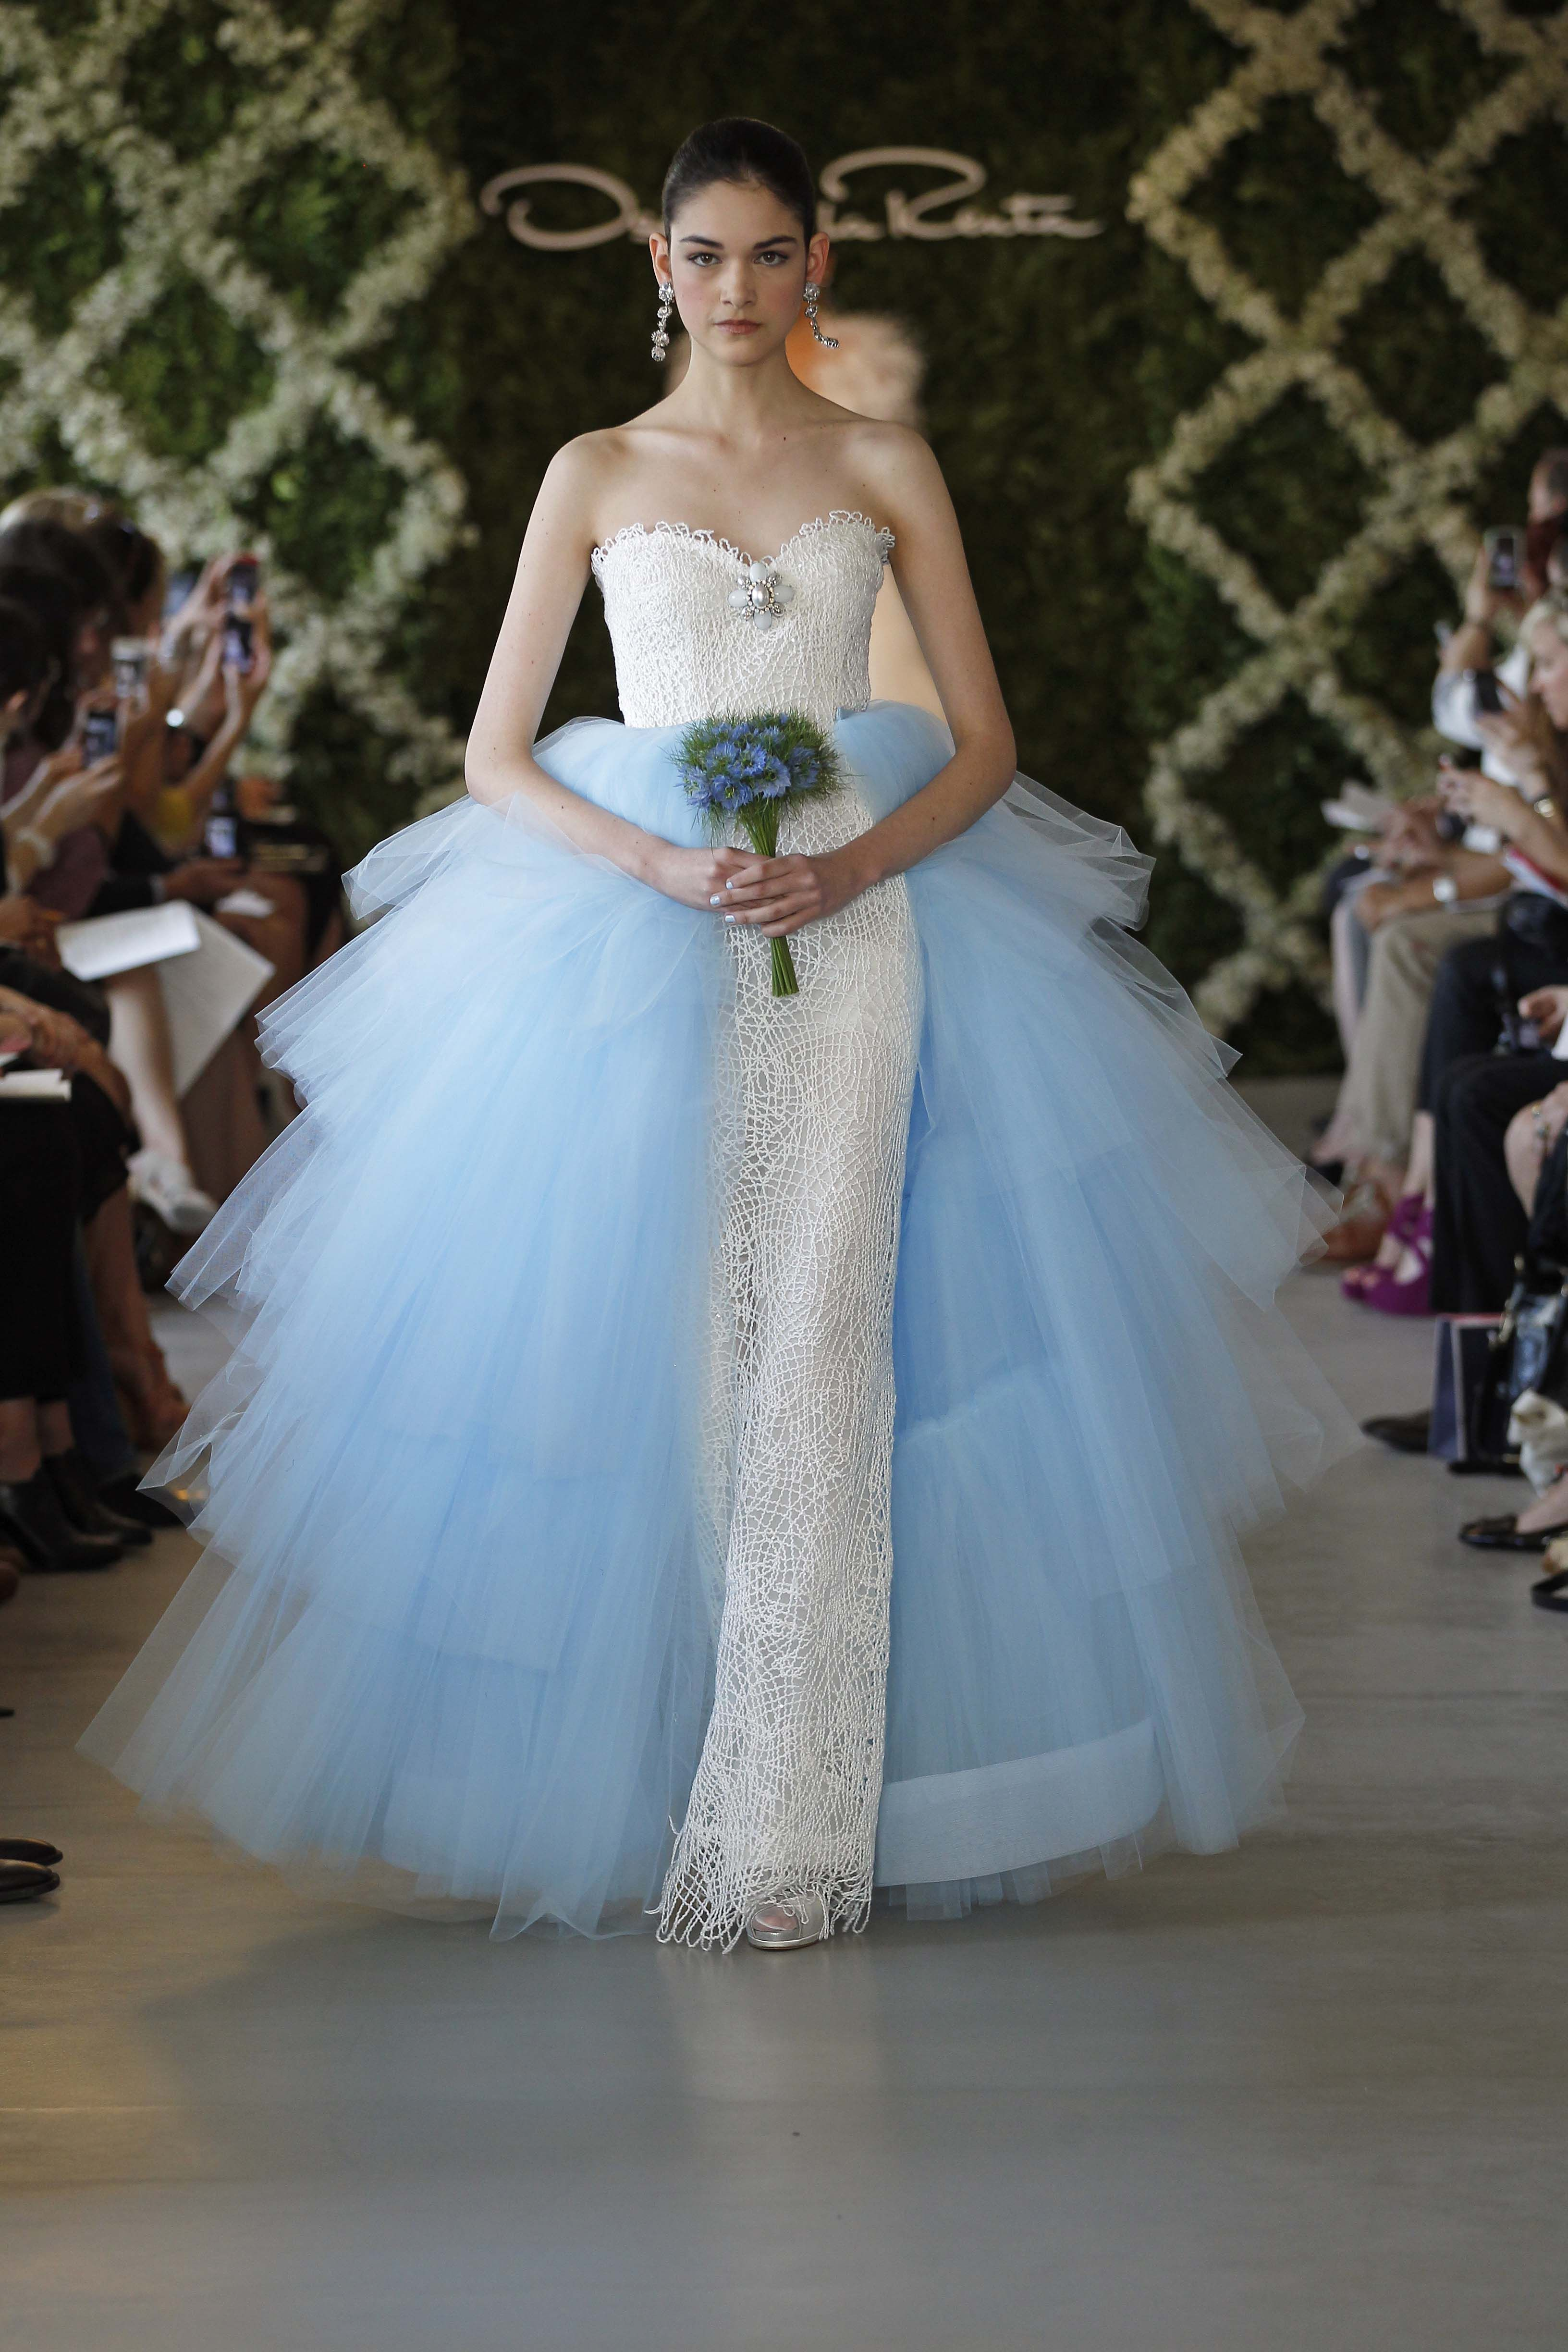 Colorful Gowns And A Crop Top Take The Runway At Oscar De La Renta